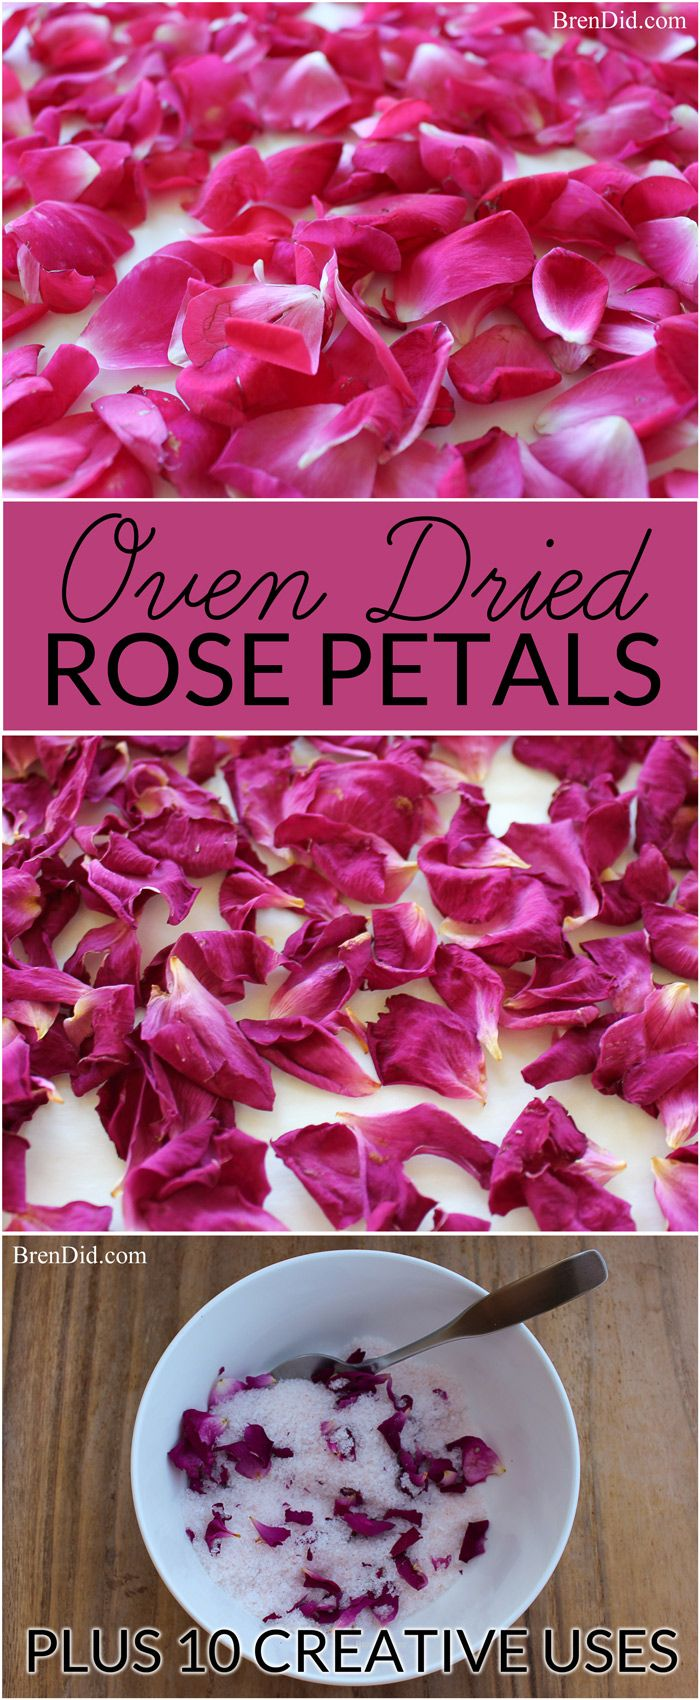 How to dry rose petals for natural body care recipes, crafts, décor and biodegradable confetti.